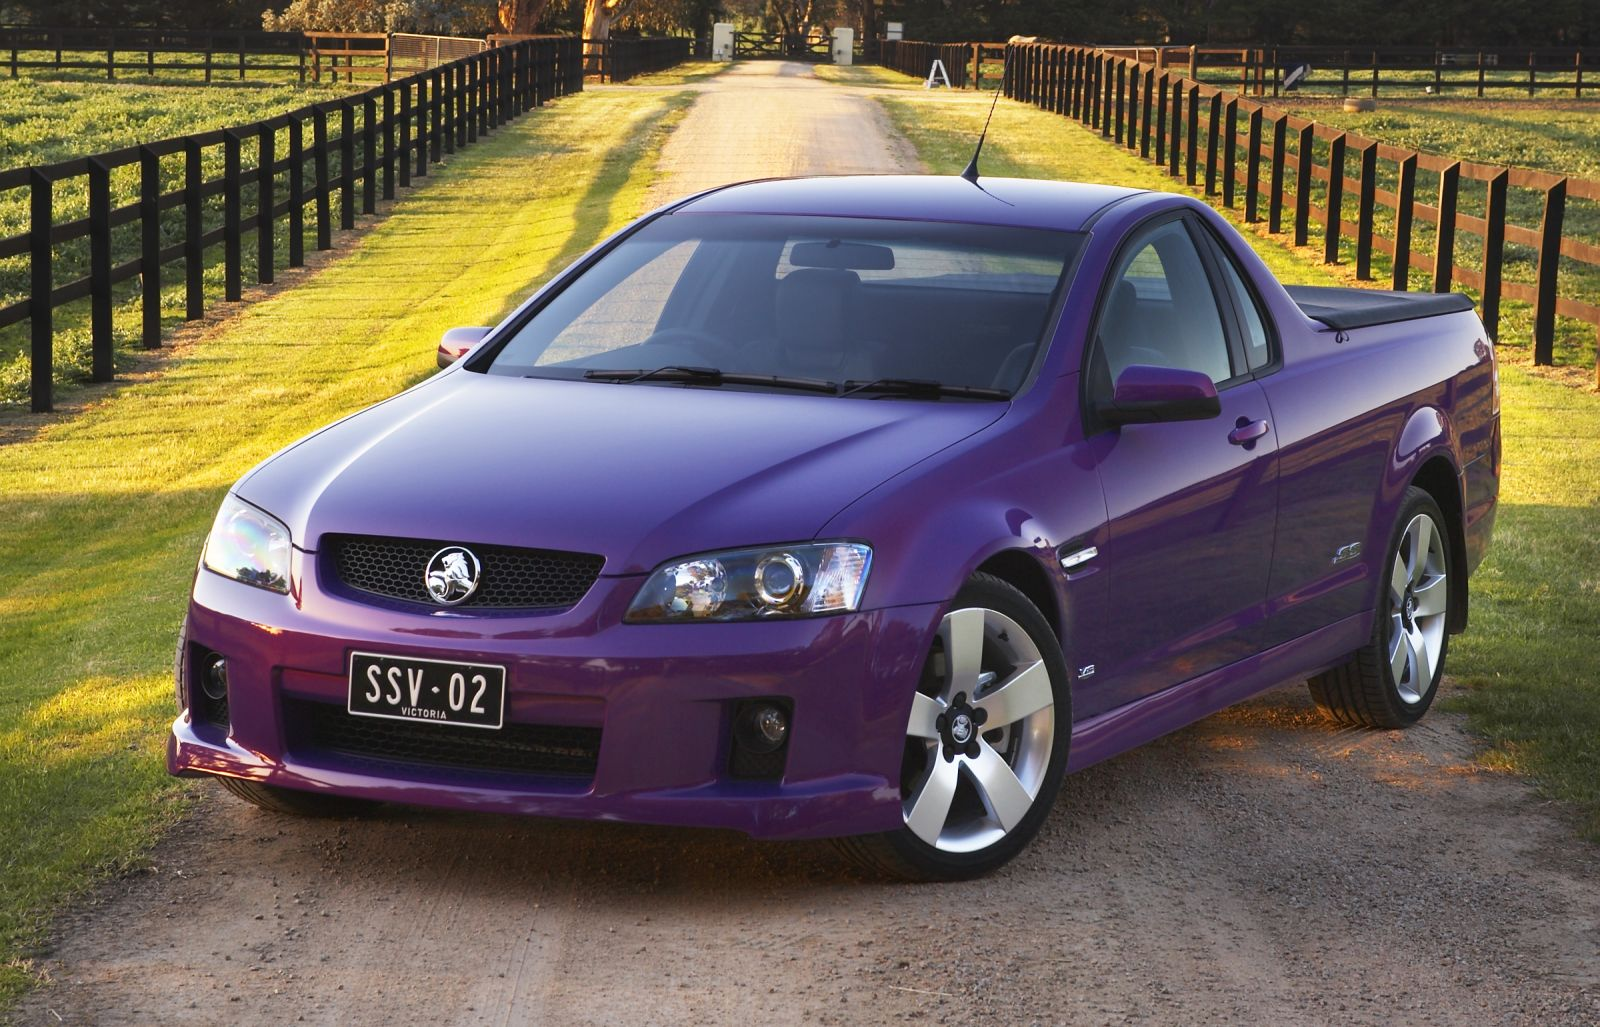 holden ute images #5